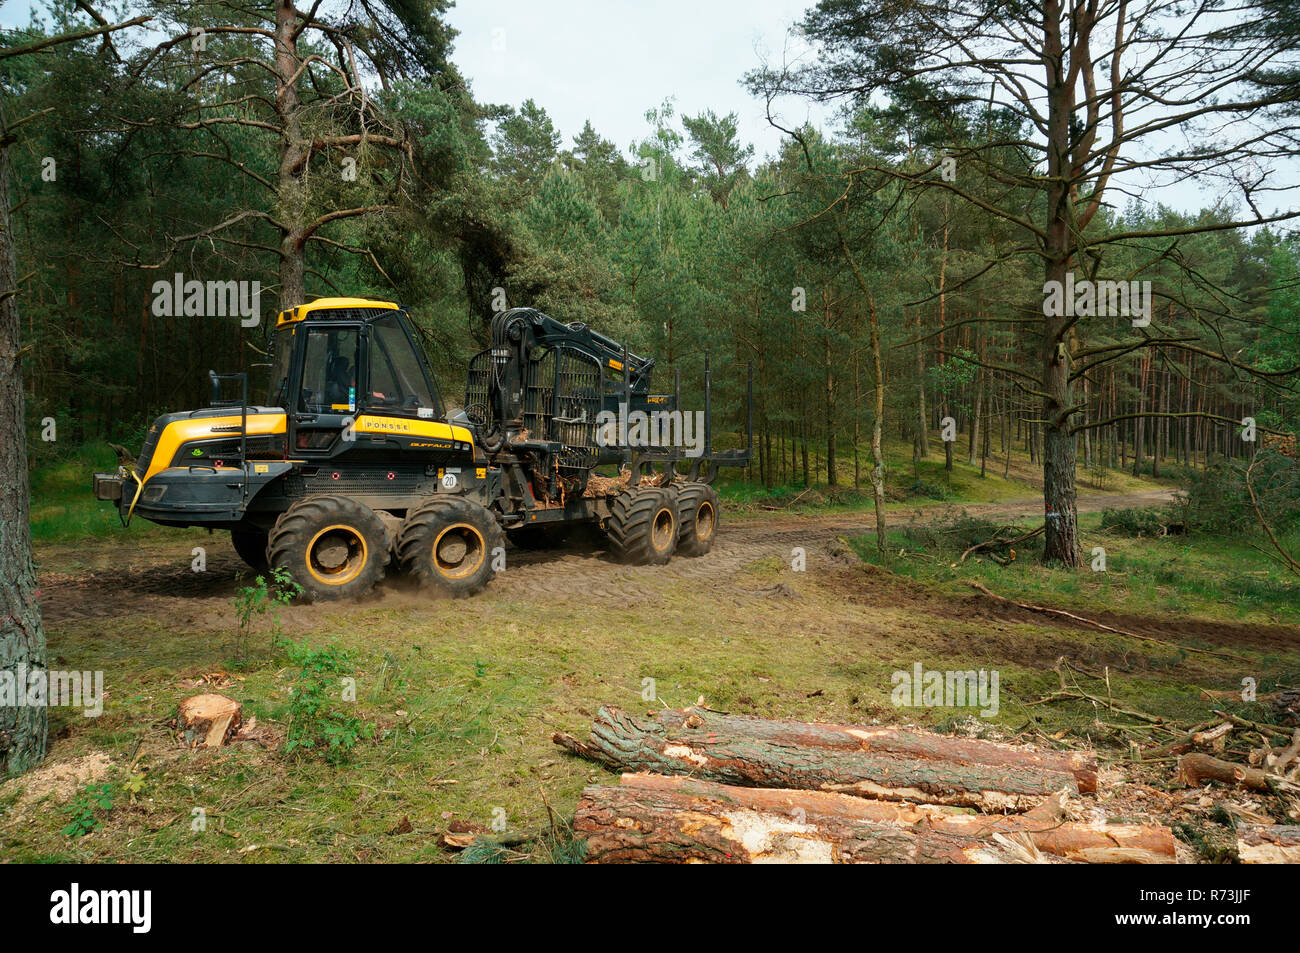 forestry, forwarder, Ponsse, pine, (Pinus sylvestris), pine forest, forest technology, forest machinery, Sarenseck, Lower Saxony, Germany Stock Photo